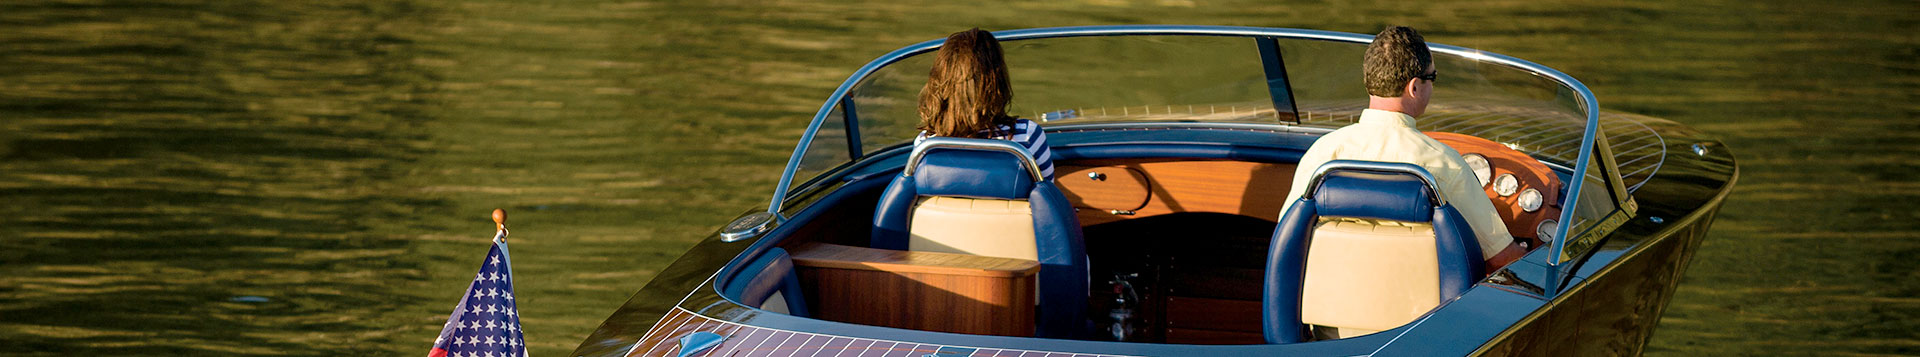 Care for your wood boat is important, count on Coeur Custom